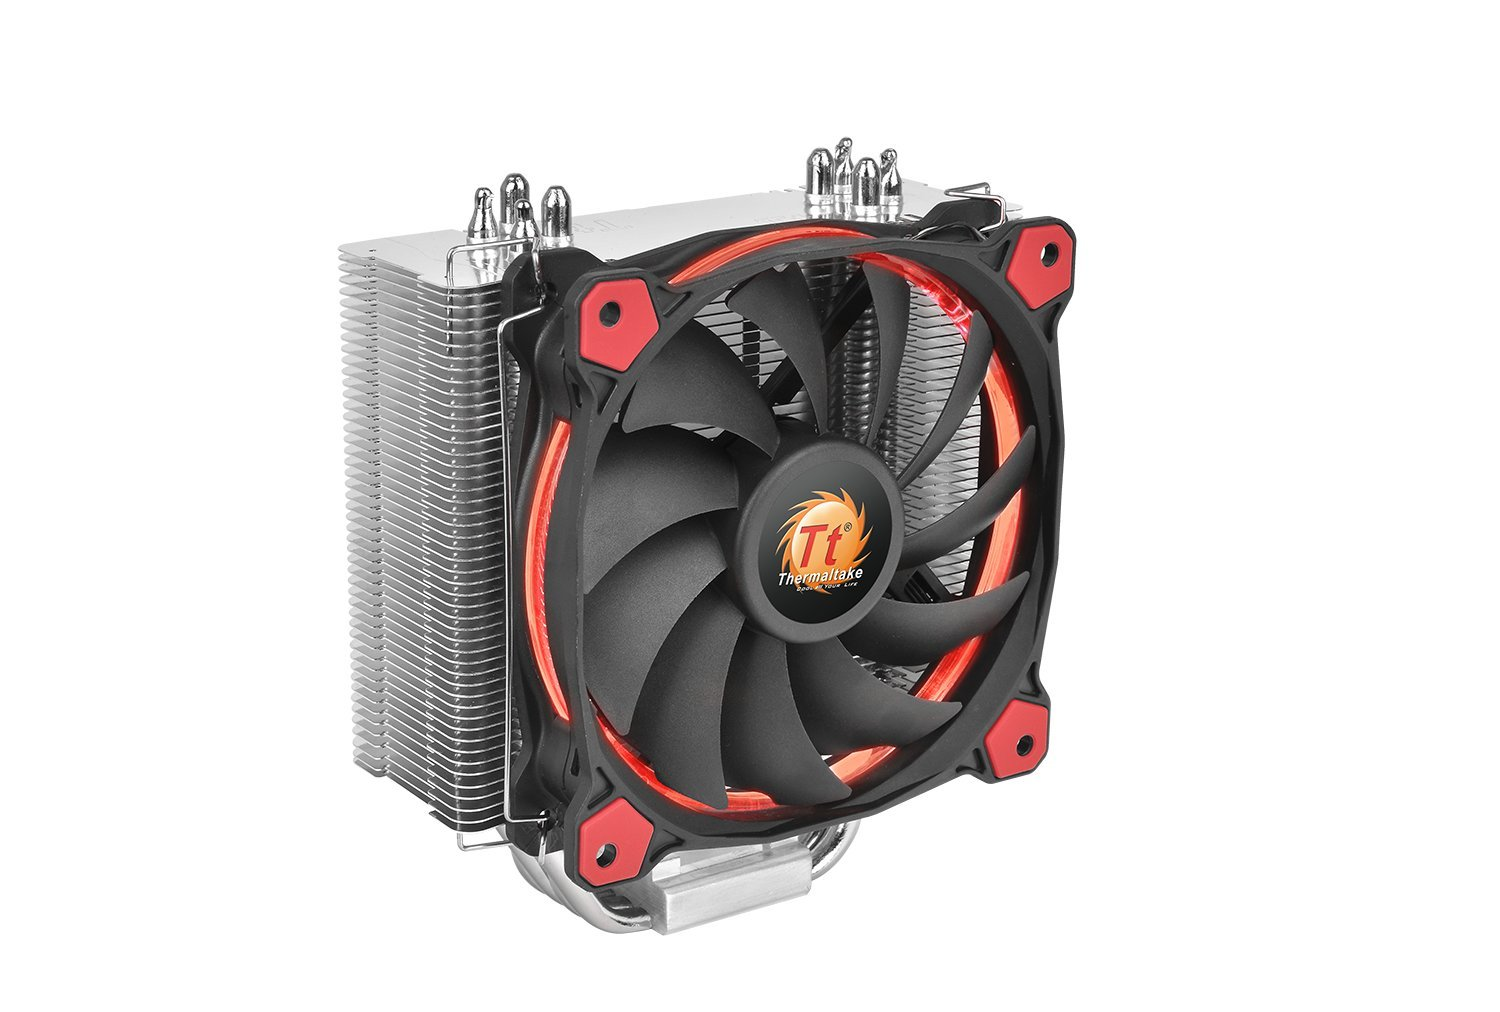 Thermaltake RIING Silent 150W Intel/AMD 120mm High Airflow LED Fan CPU Cooler, Red